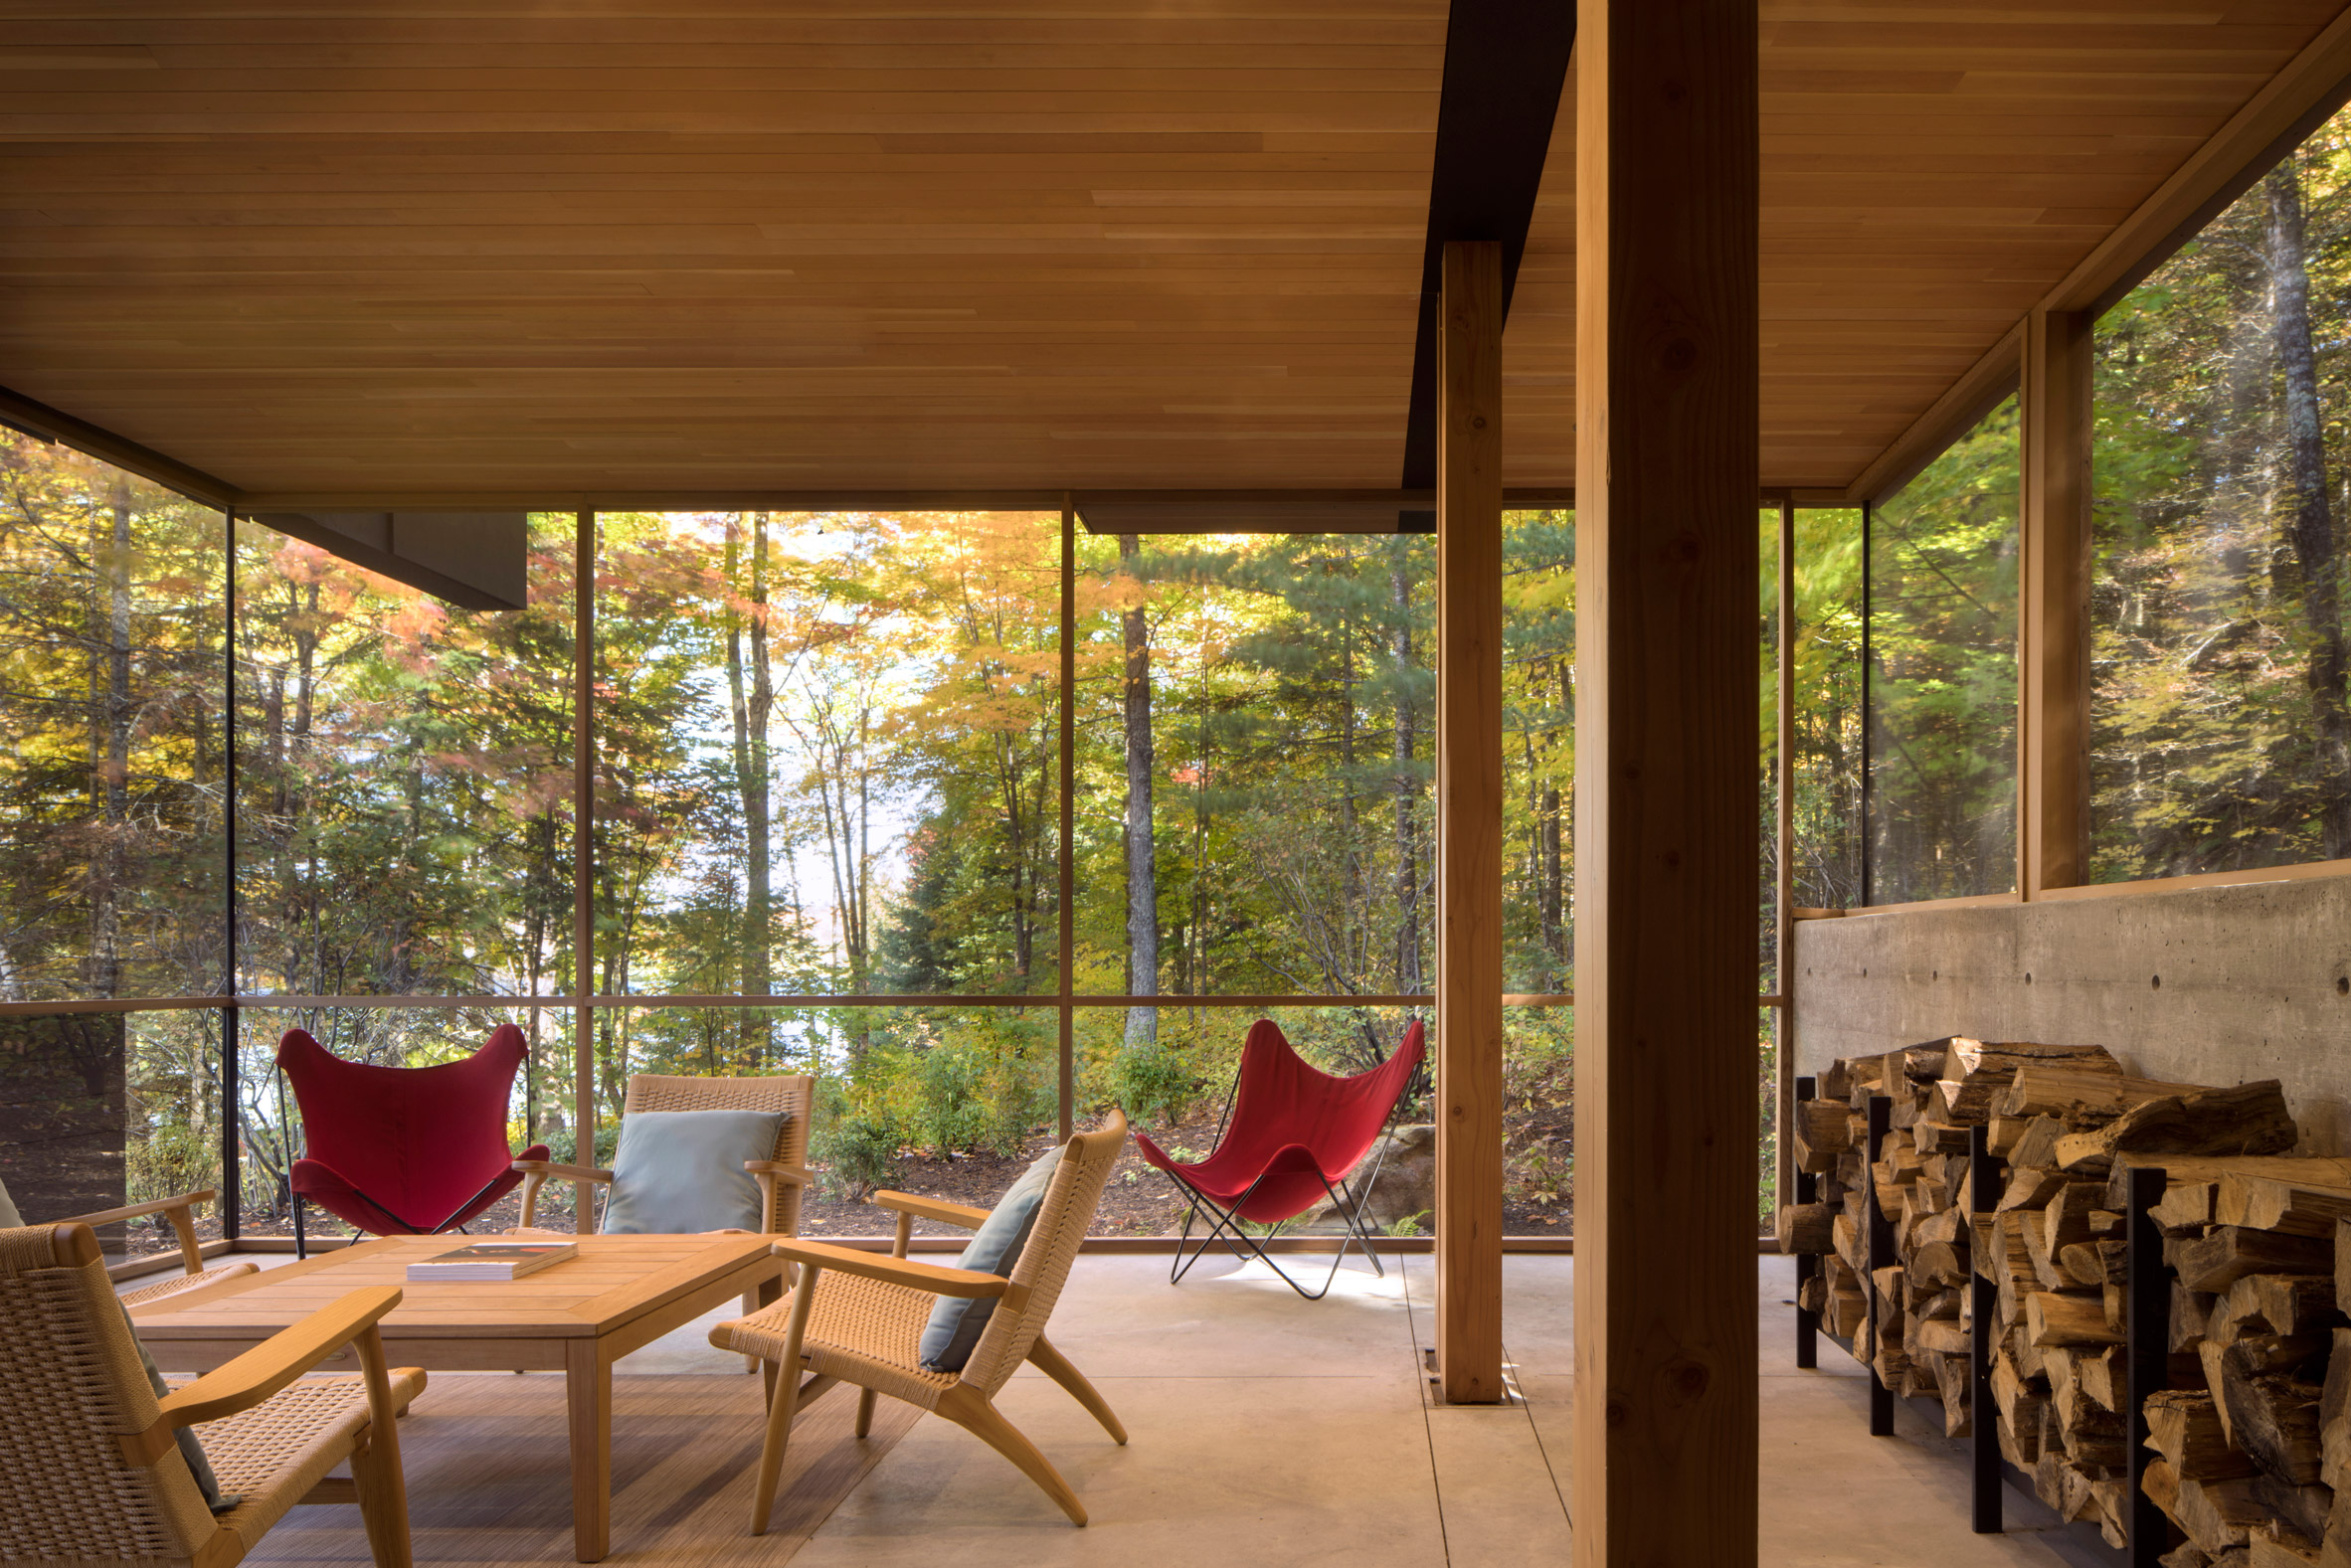 Bohlin Cywinski Jackson creates remote holiday retreat in Ontario forest